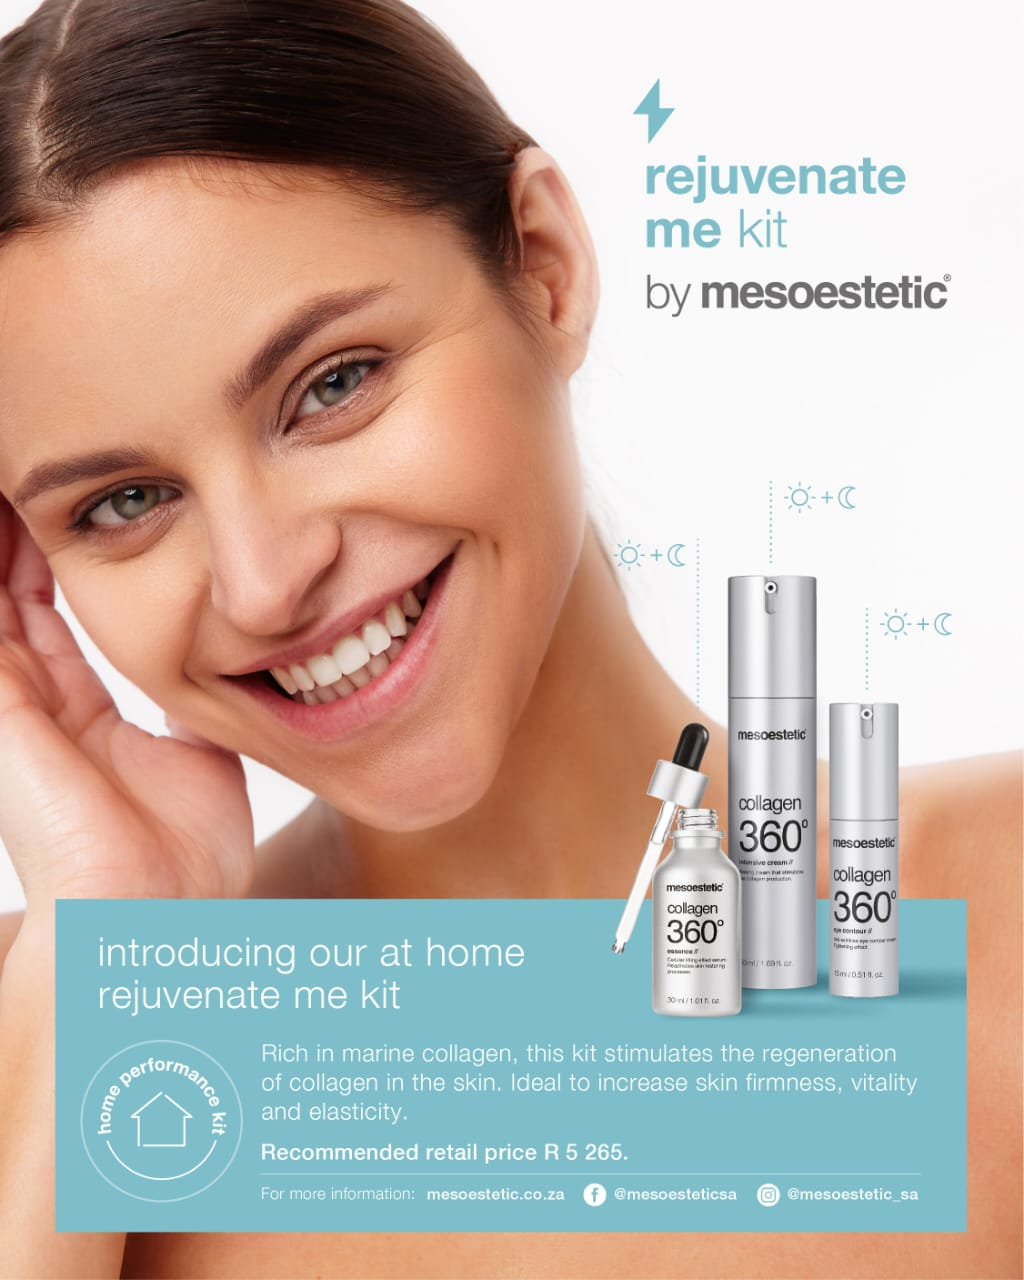 Rejuvenate me kit